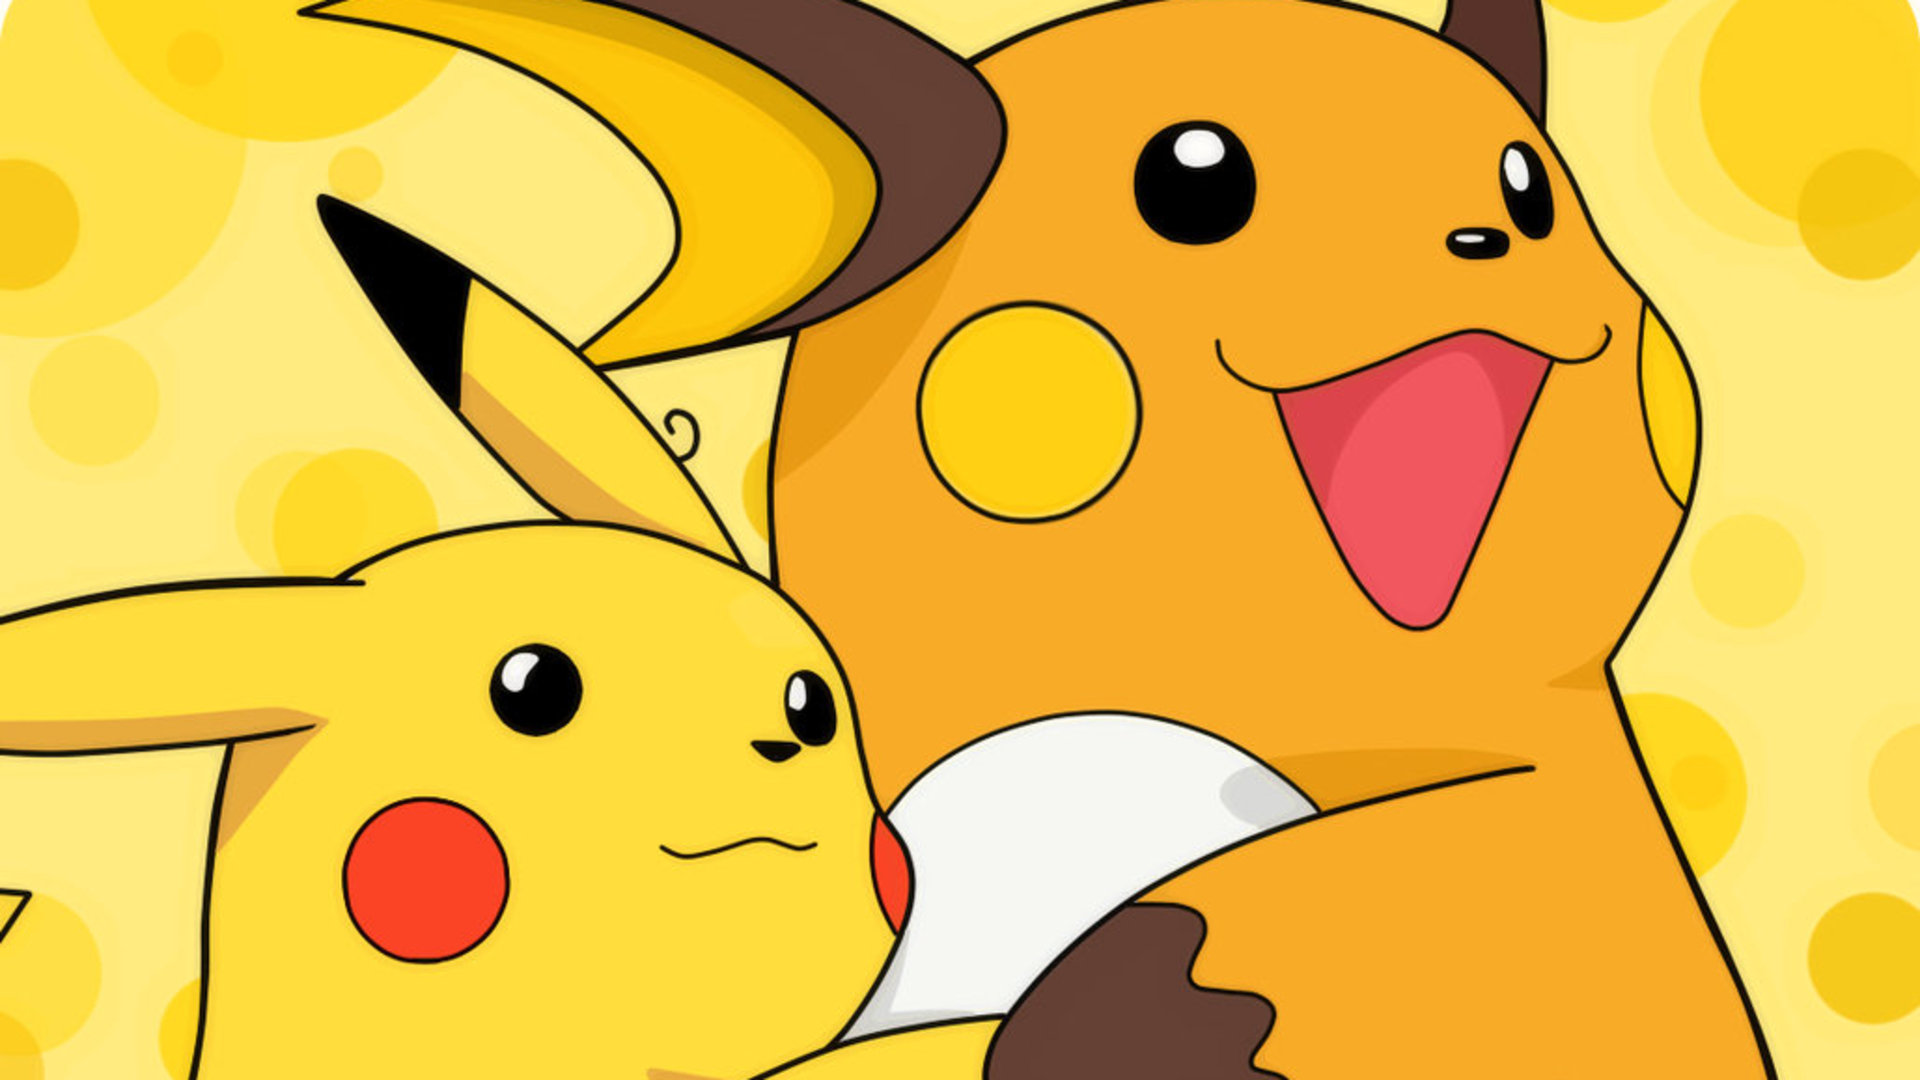 How successful is Pokémon? Take a look at the numbers!